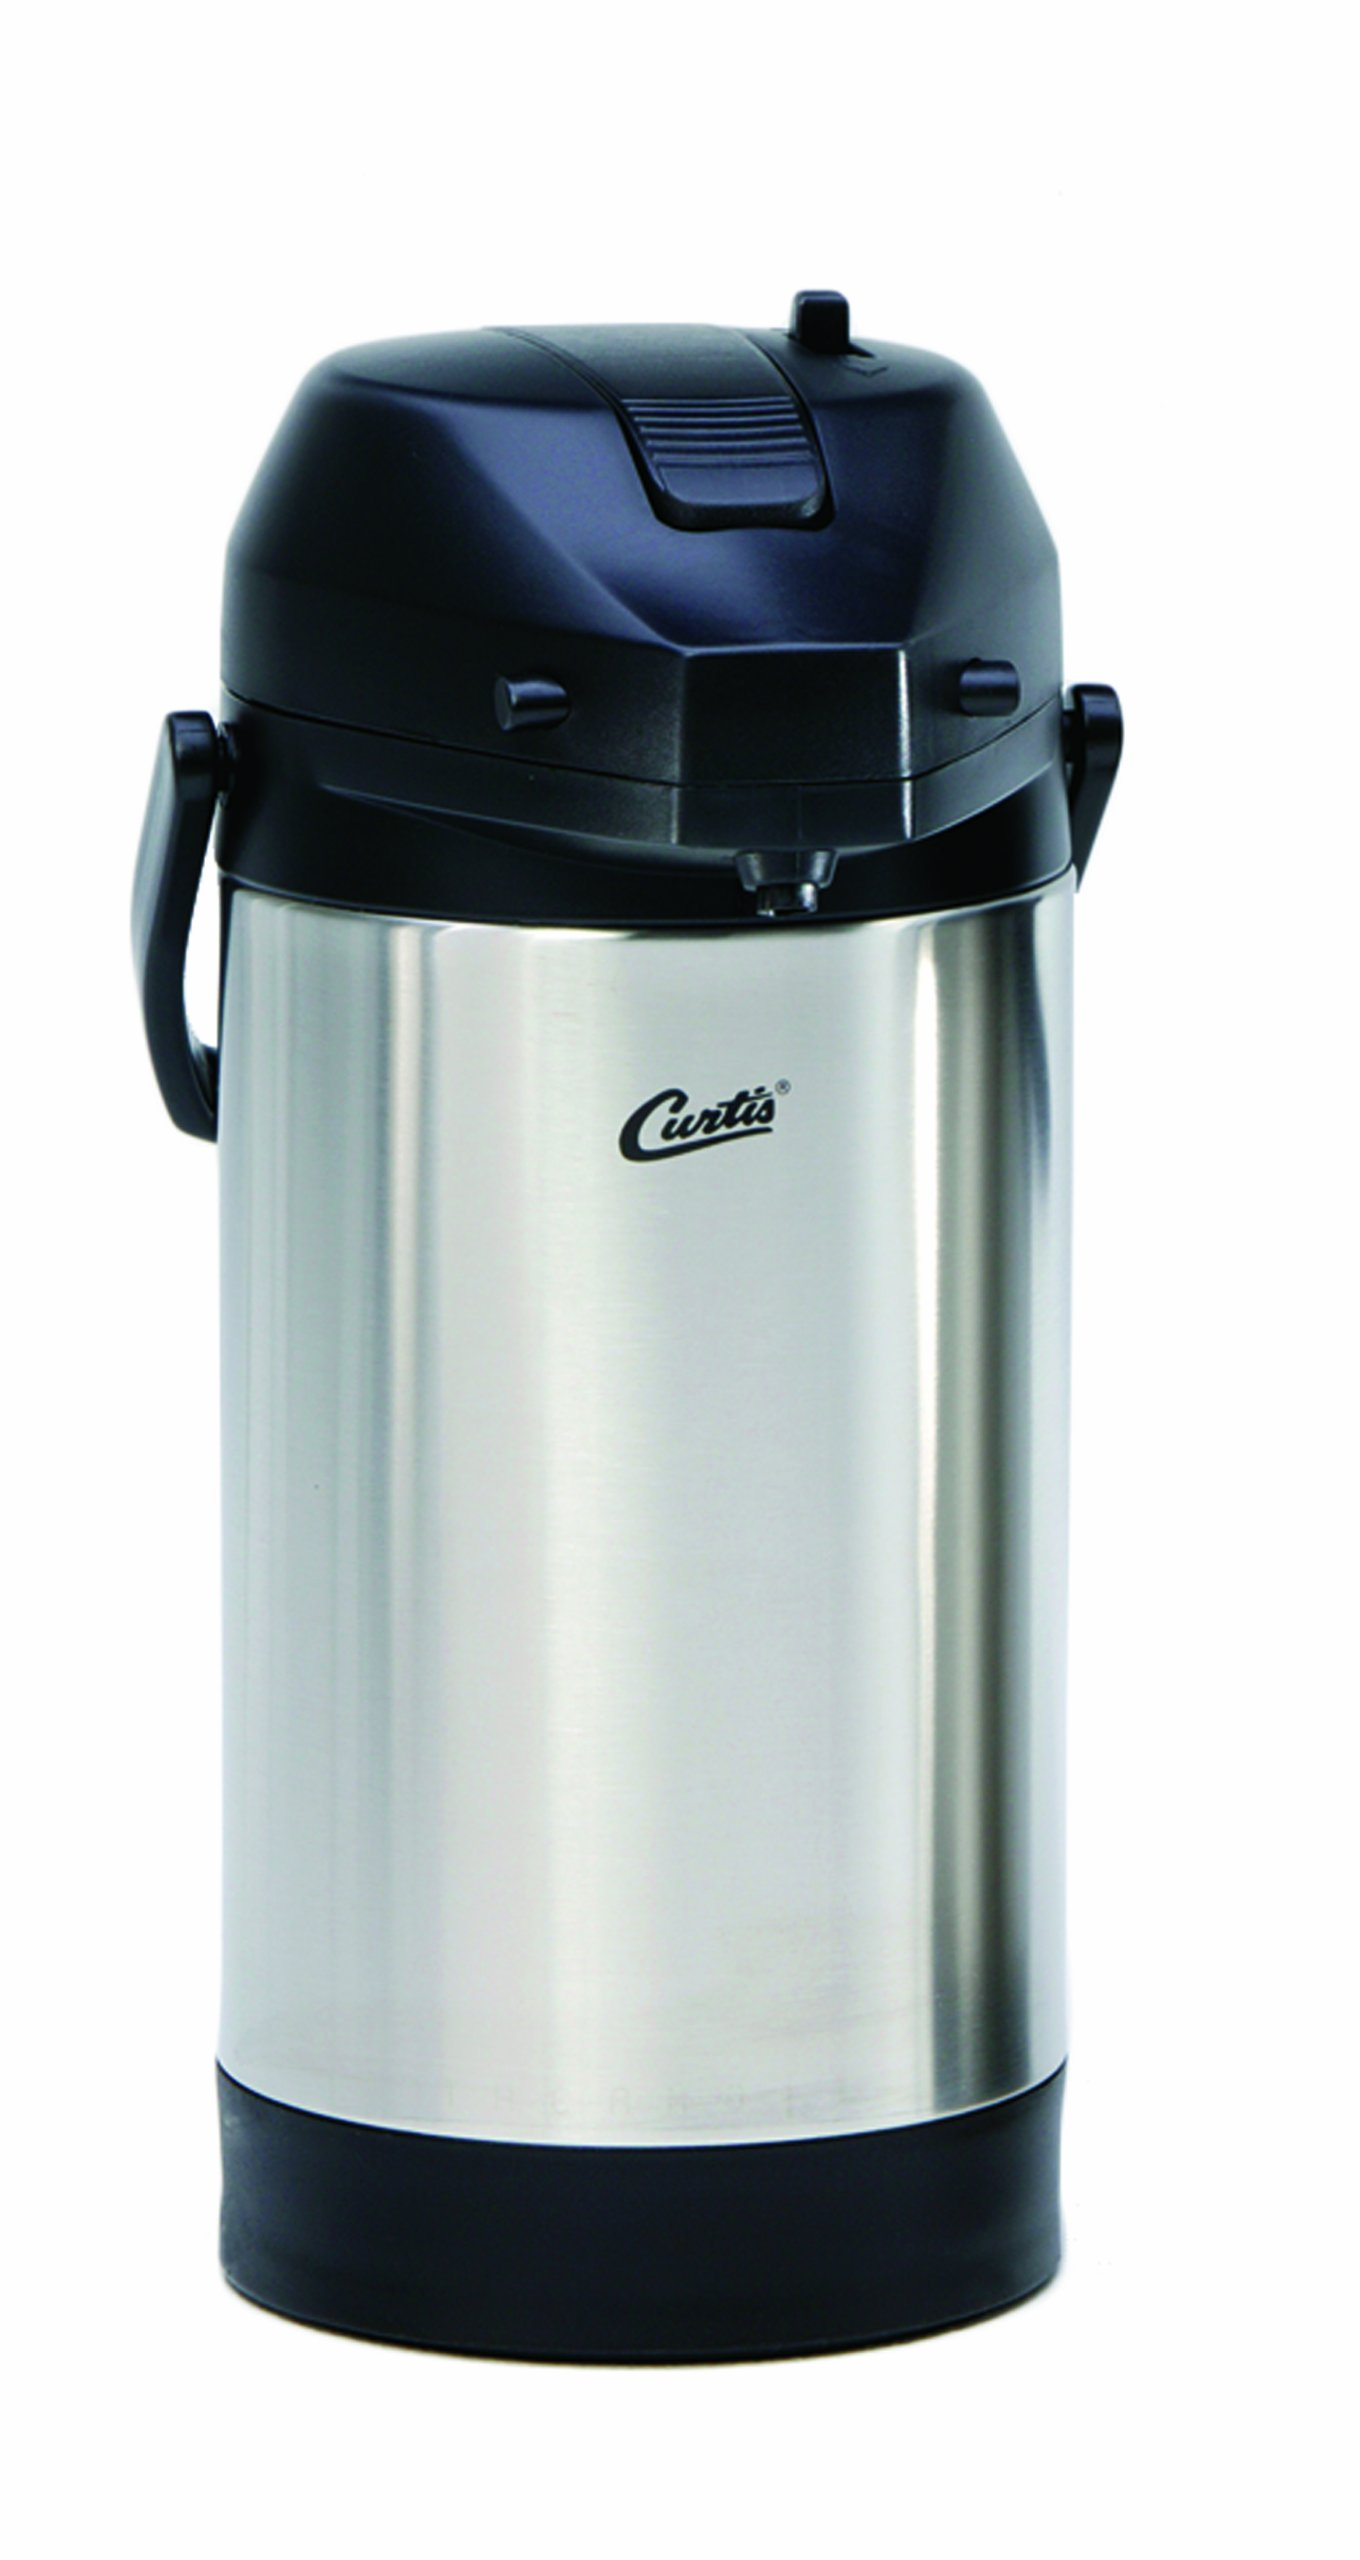 Wilbur Curtis Thermal Dispenser Air Pot, 2.5L S.S. Body S.S. Liner Lever Pump - Commercial Airpot Pourpot Beverage Dispenser - TLXA2501S000 (Each) by Wilbur Curtis